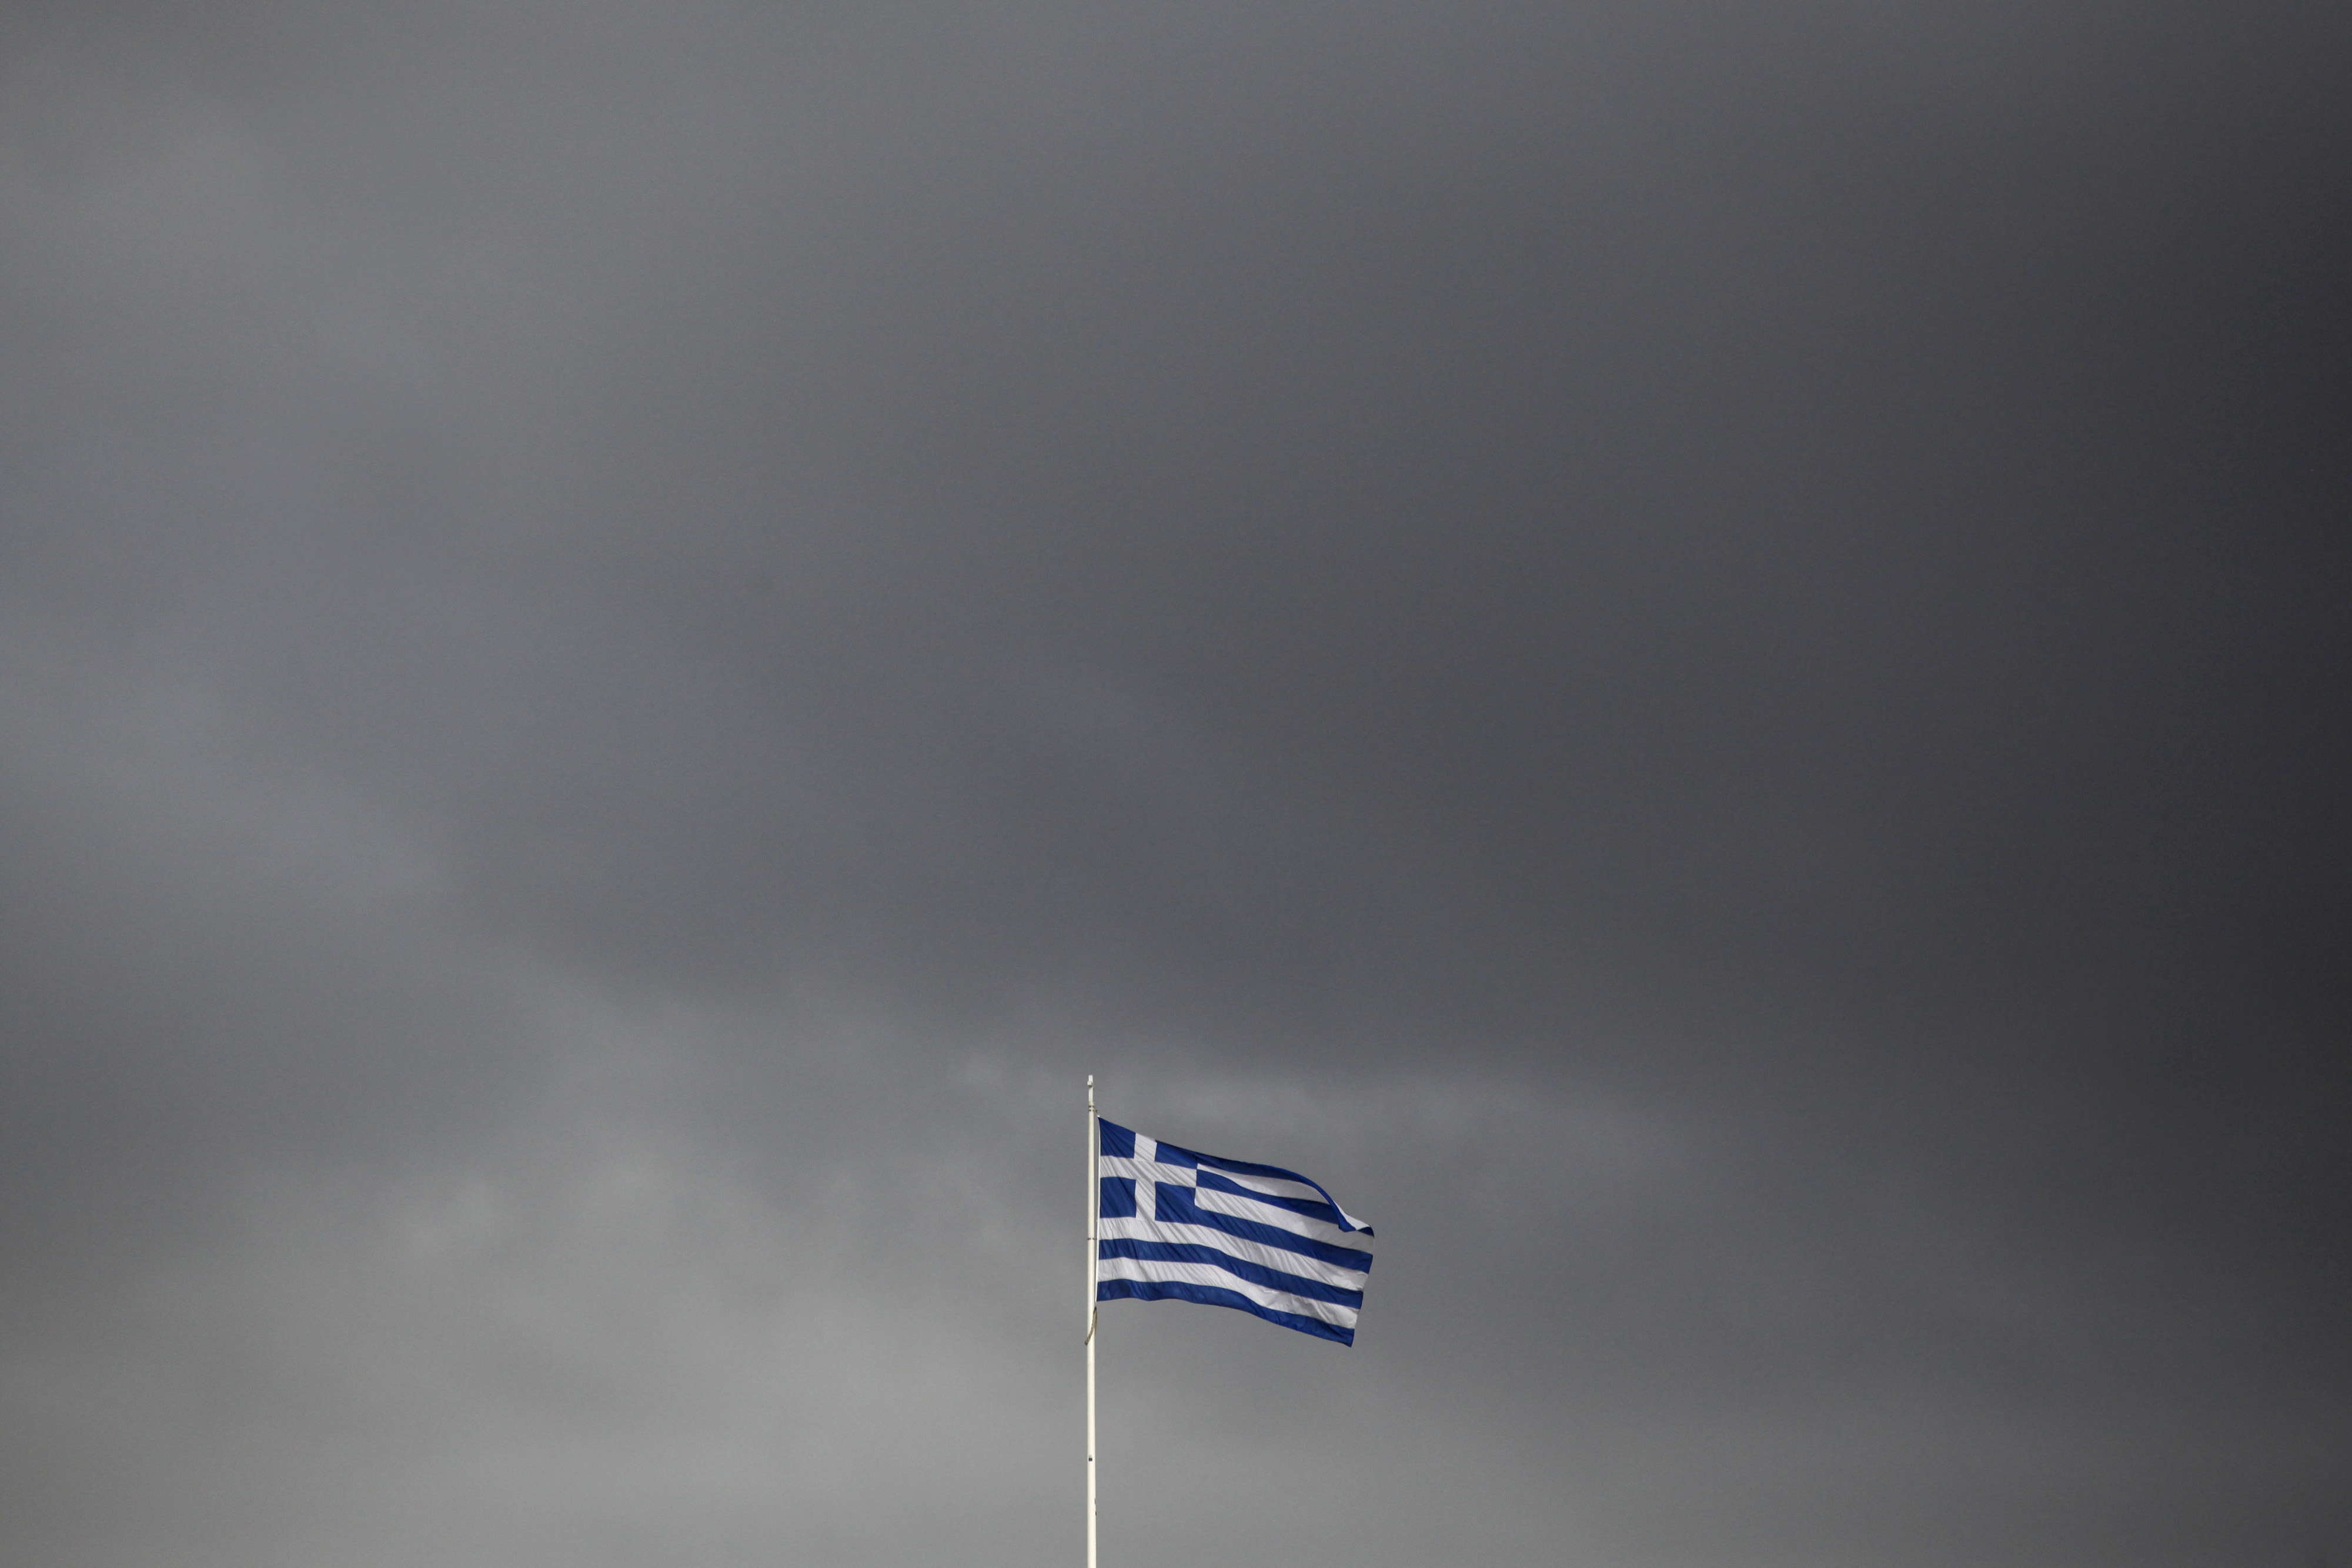 A European Union (EU) flag flies above the Greek parliament in Athens, Greece, on Tuesday, Feb. 24, 2015. Greece moved closer to winning an extension of financial aid after the head of the group of euro-region finance ministers said creditors were favorable toward the government's package of new economic measures. Photographer: Kostas Tsironis/Bloomberg